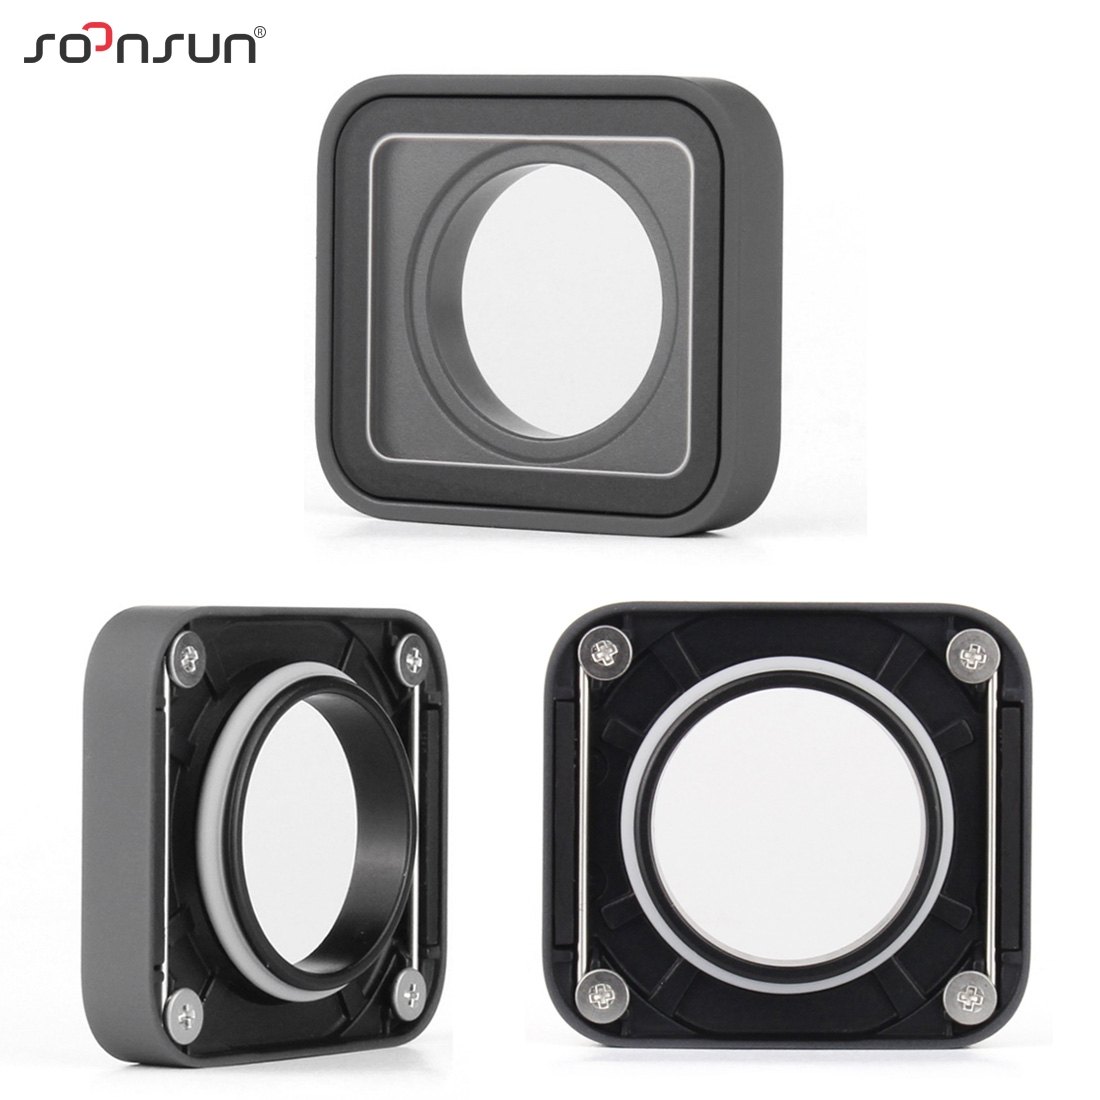 Image 3 - SOONSUN Protective Lens Replacement Side Door Repair Parts USB C Mini HDMI Port Side Cover for GoPro HERO 7 6 5 Black CameraSports Camcorder Cases   -